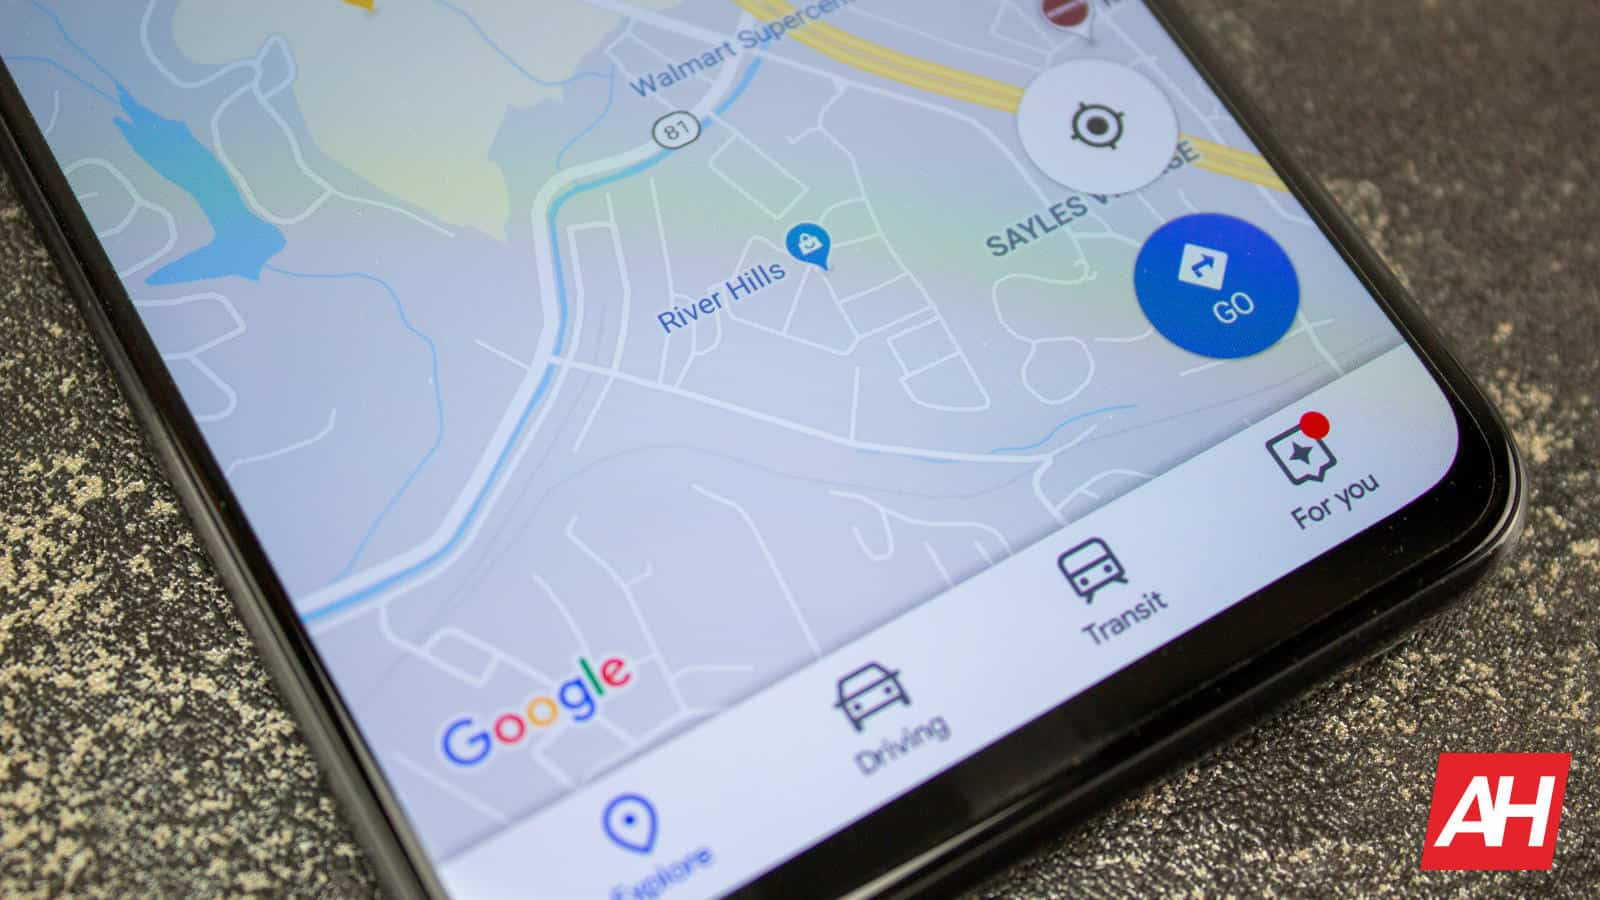 Google Assistant driving mode in Maps arrives in more countries